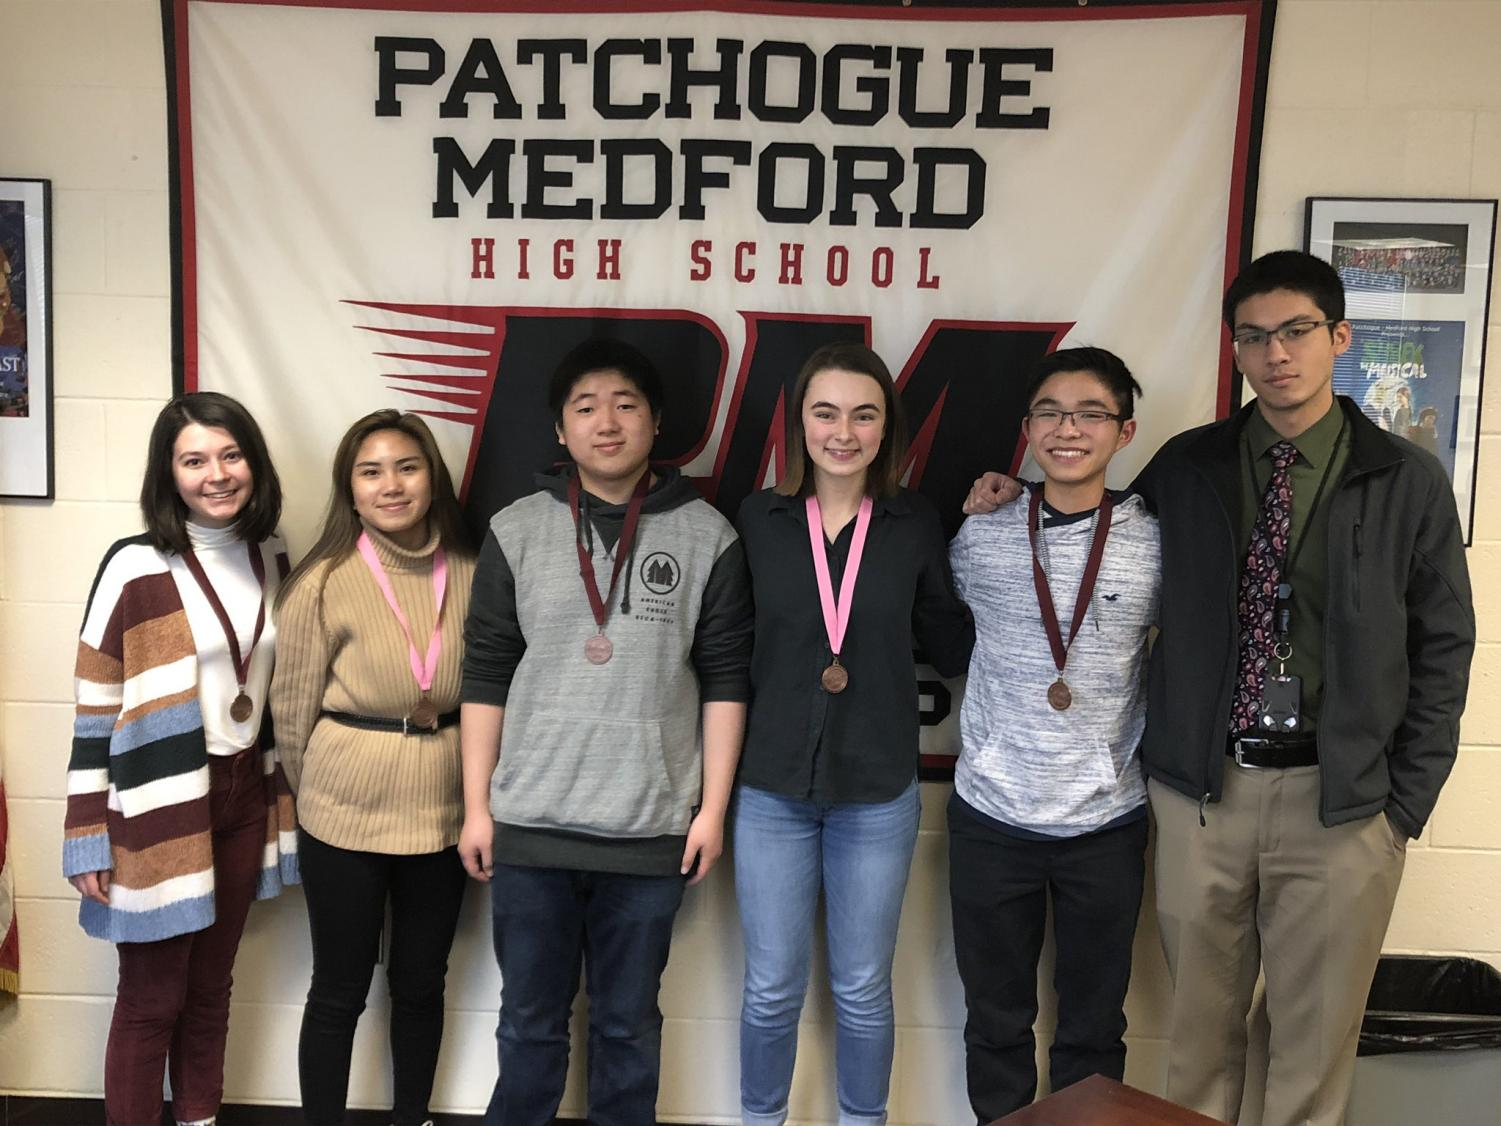 (From left to right) Elizabeth Niemiec, Francine Tongol, Evan Zhang, Meghan O'Leary, and Justin Zhou. The Science Olympiad competition was on January 26th at Ward Melville High School.